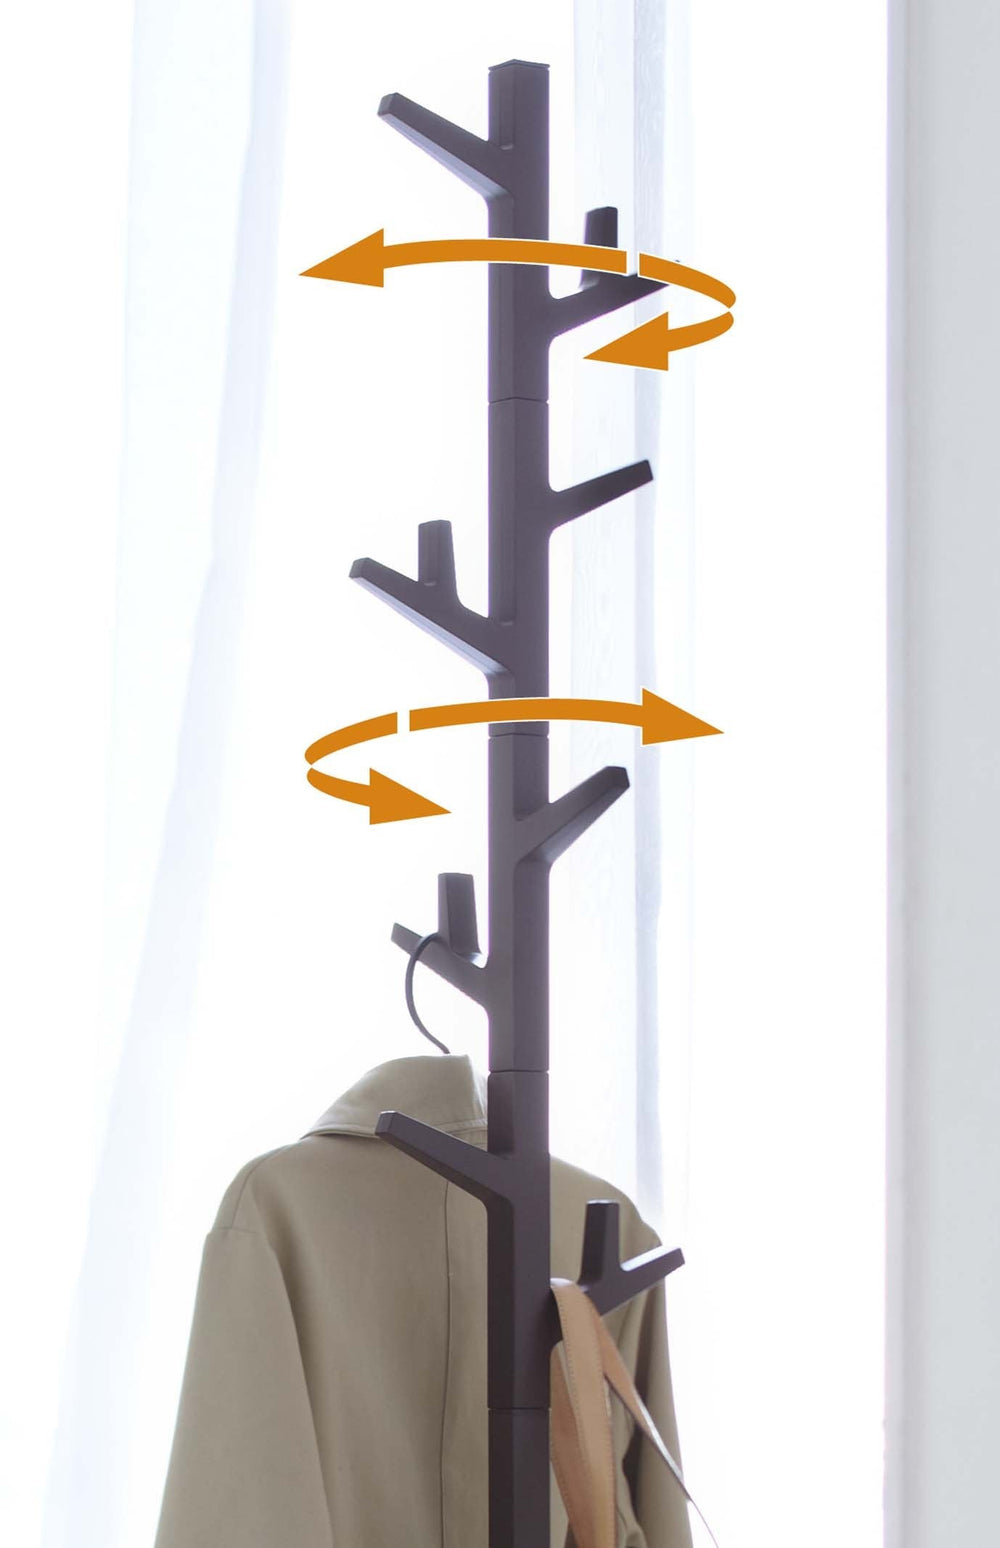 Yamazaki's Brown coat rack in the shape of a tree marked with orange arrows to indicate its mobility